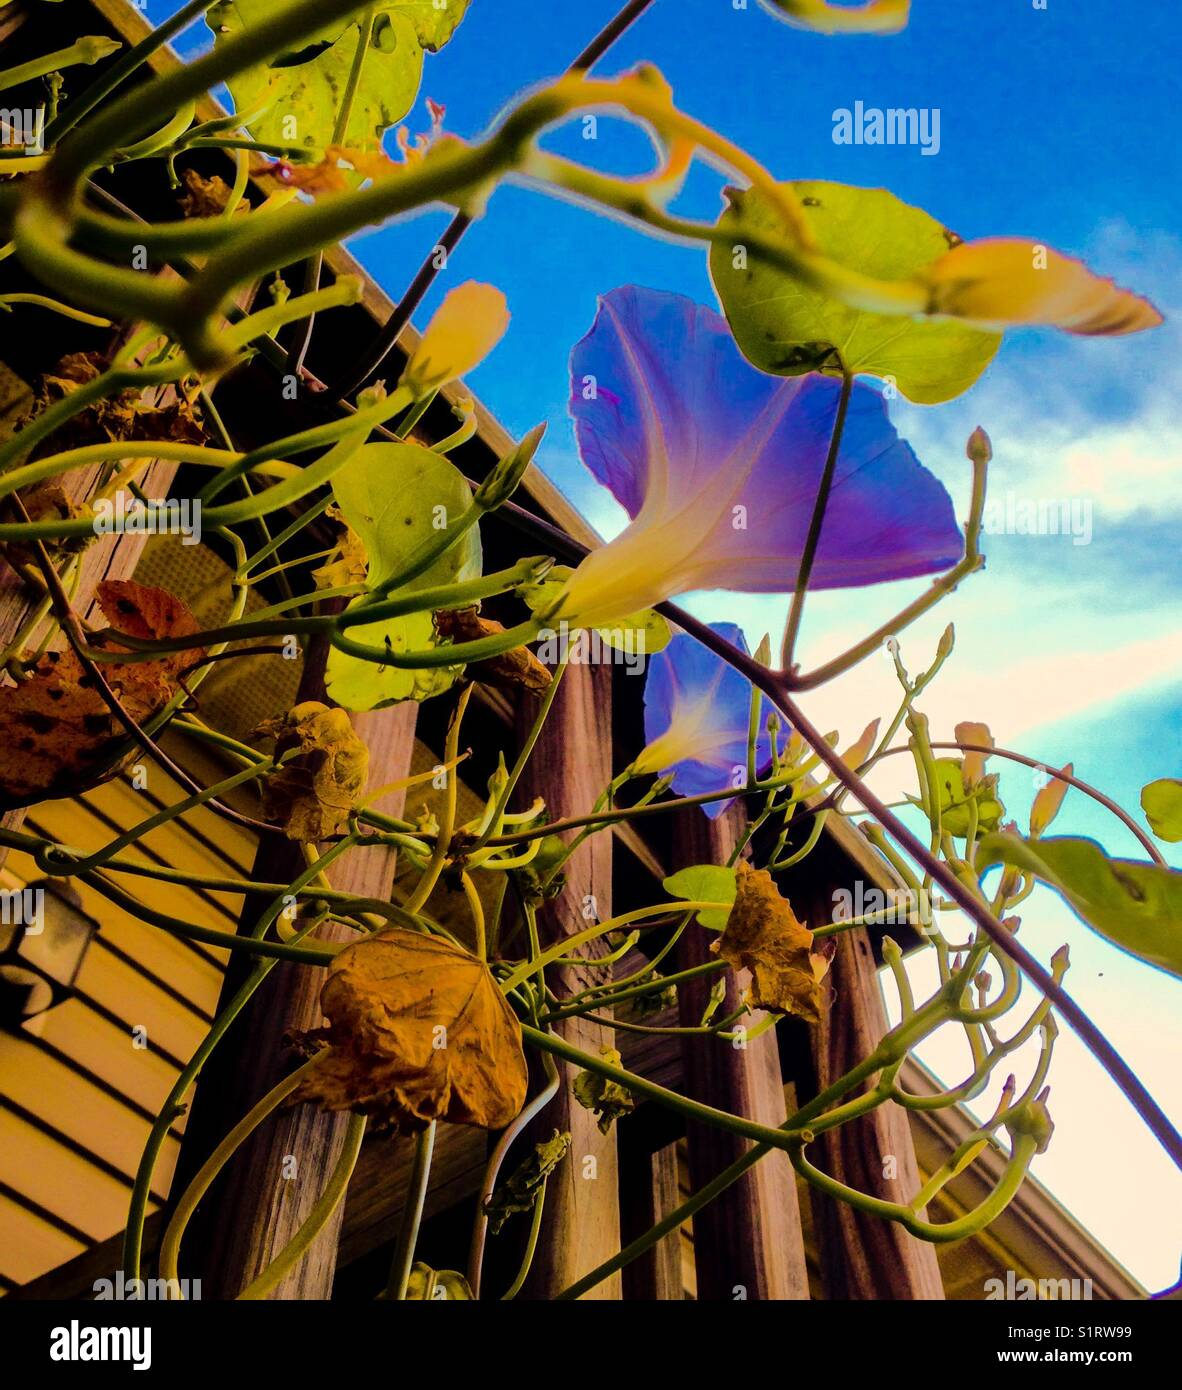 Morning glories on the handrail - Stock Image